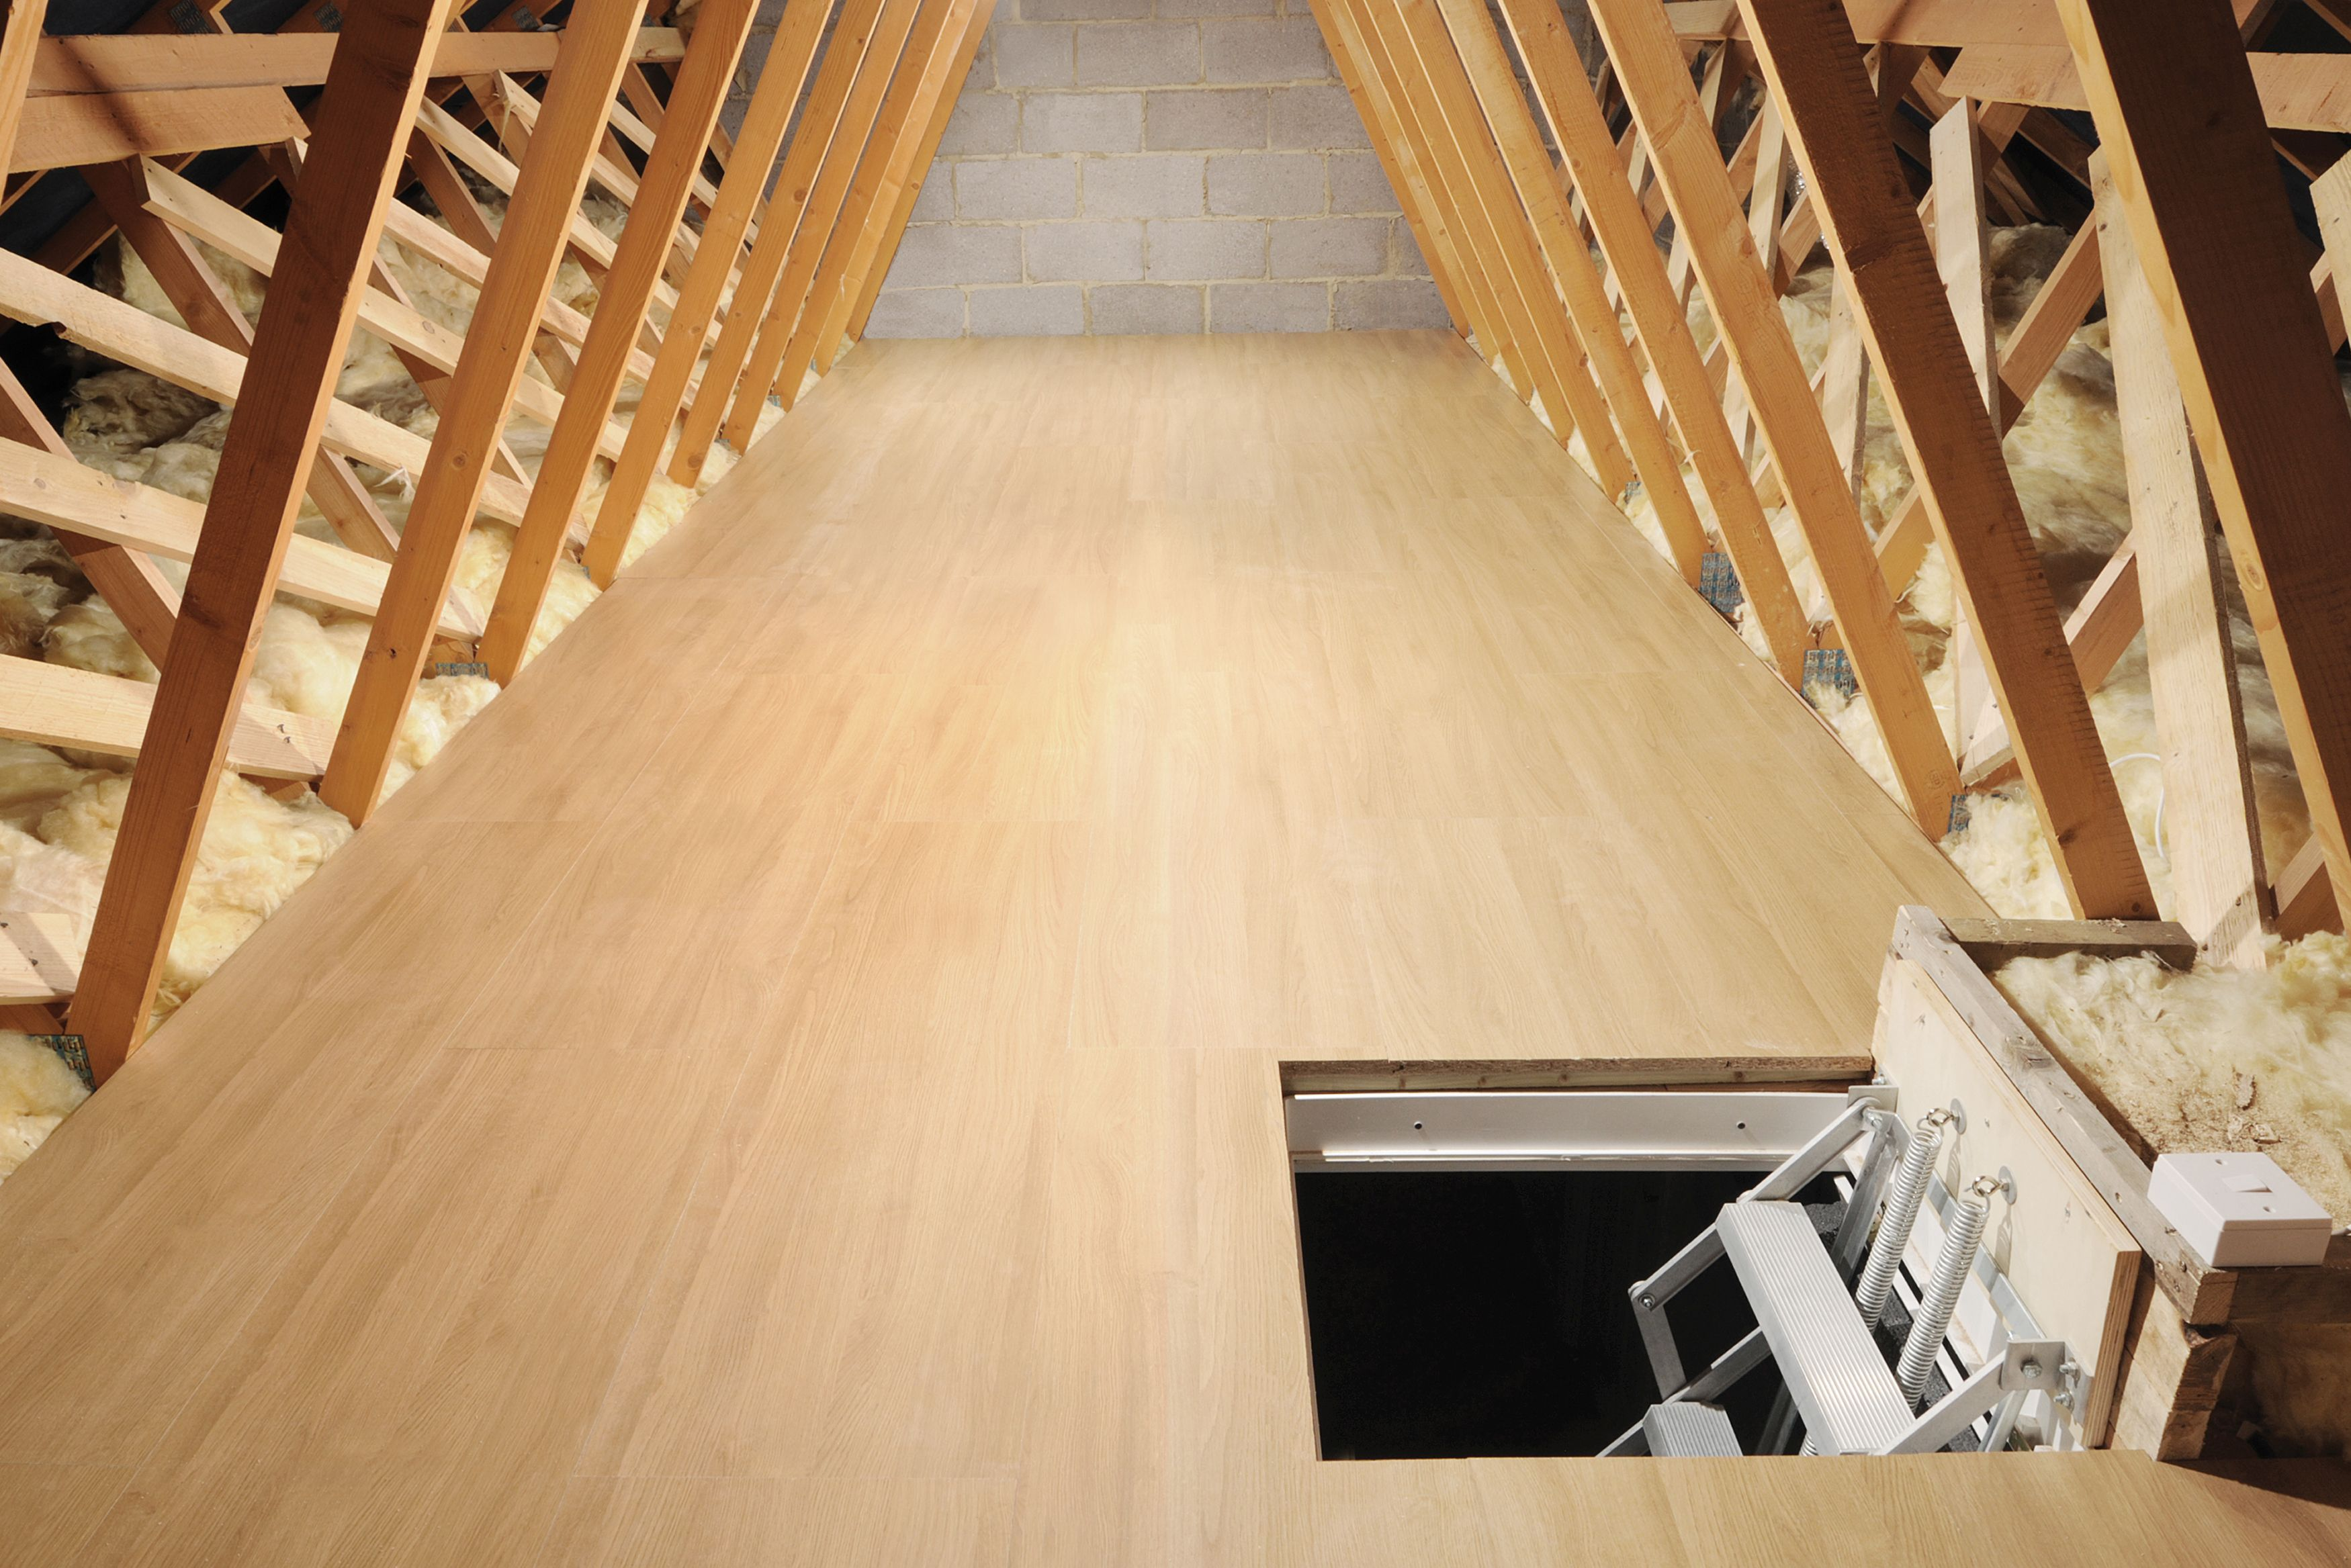 attic stair ideas - Moving on up Things to keep in mind when converting your